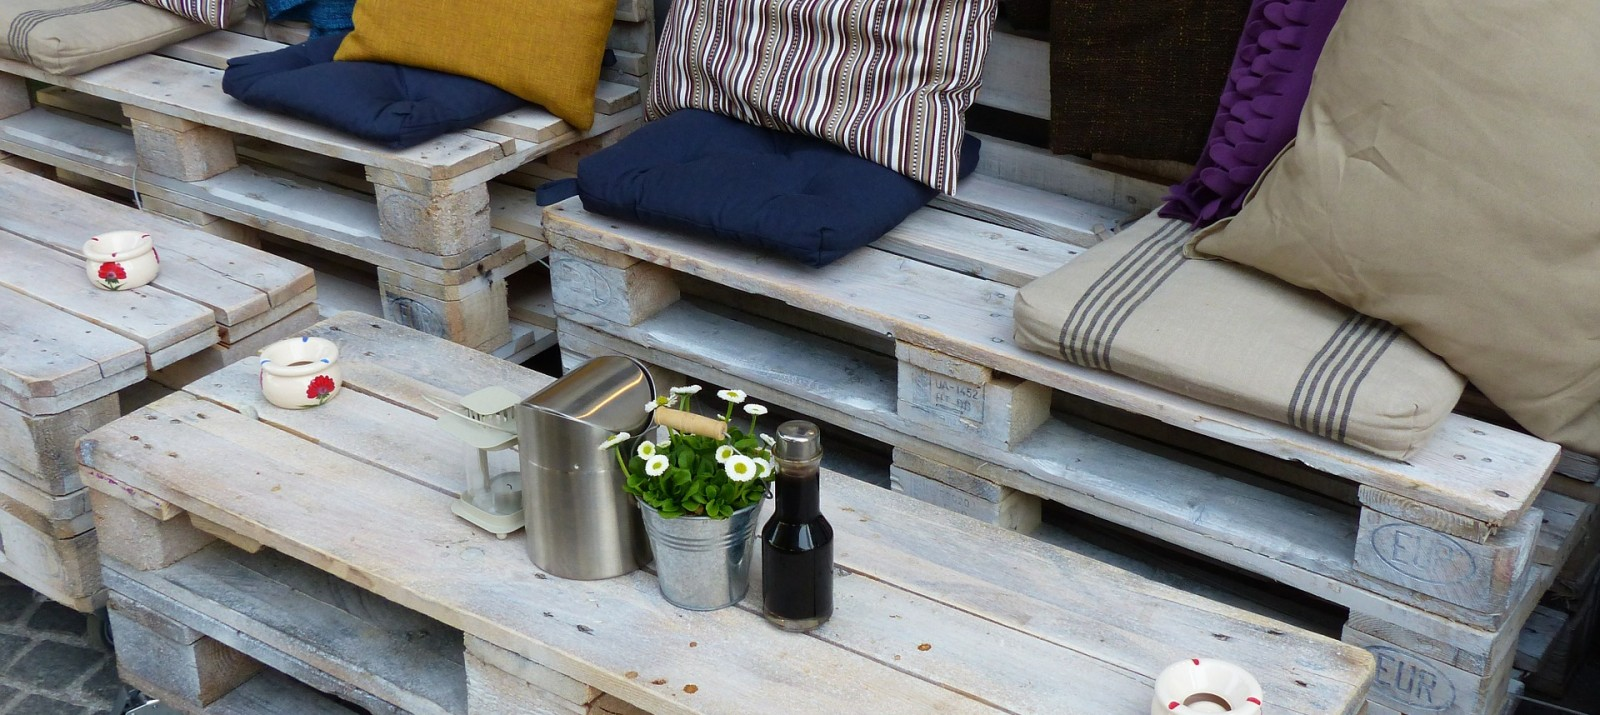 11 DIY Wood Pallet Ideas To Make Space In Your Apartment